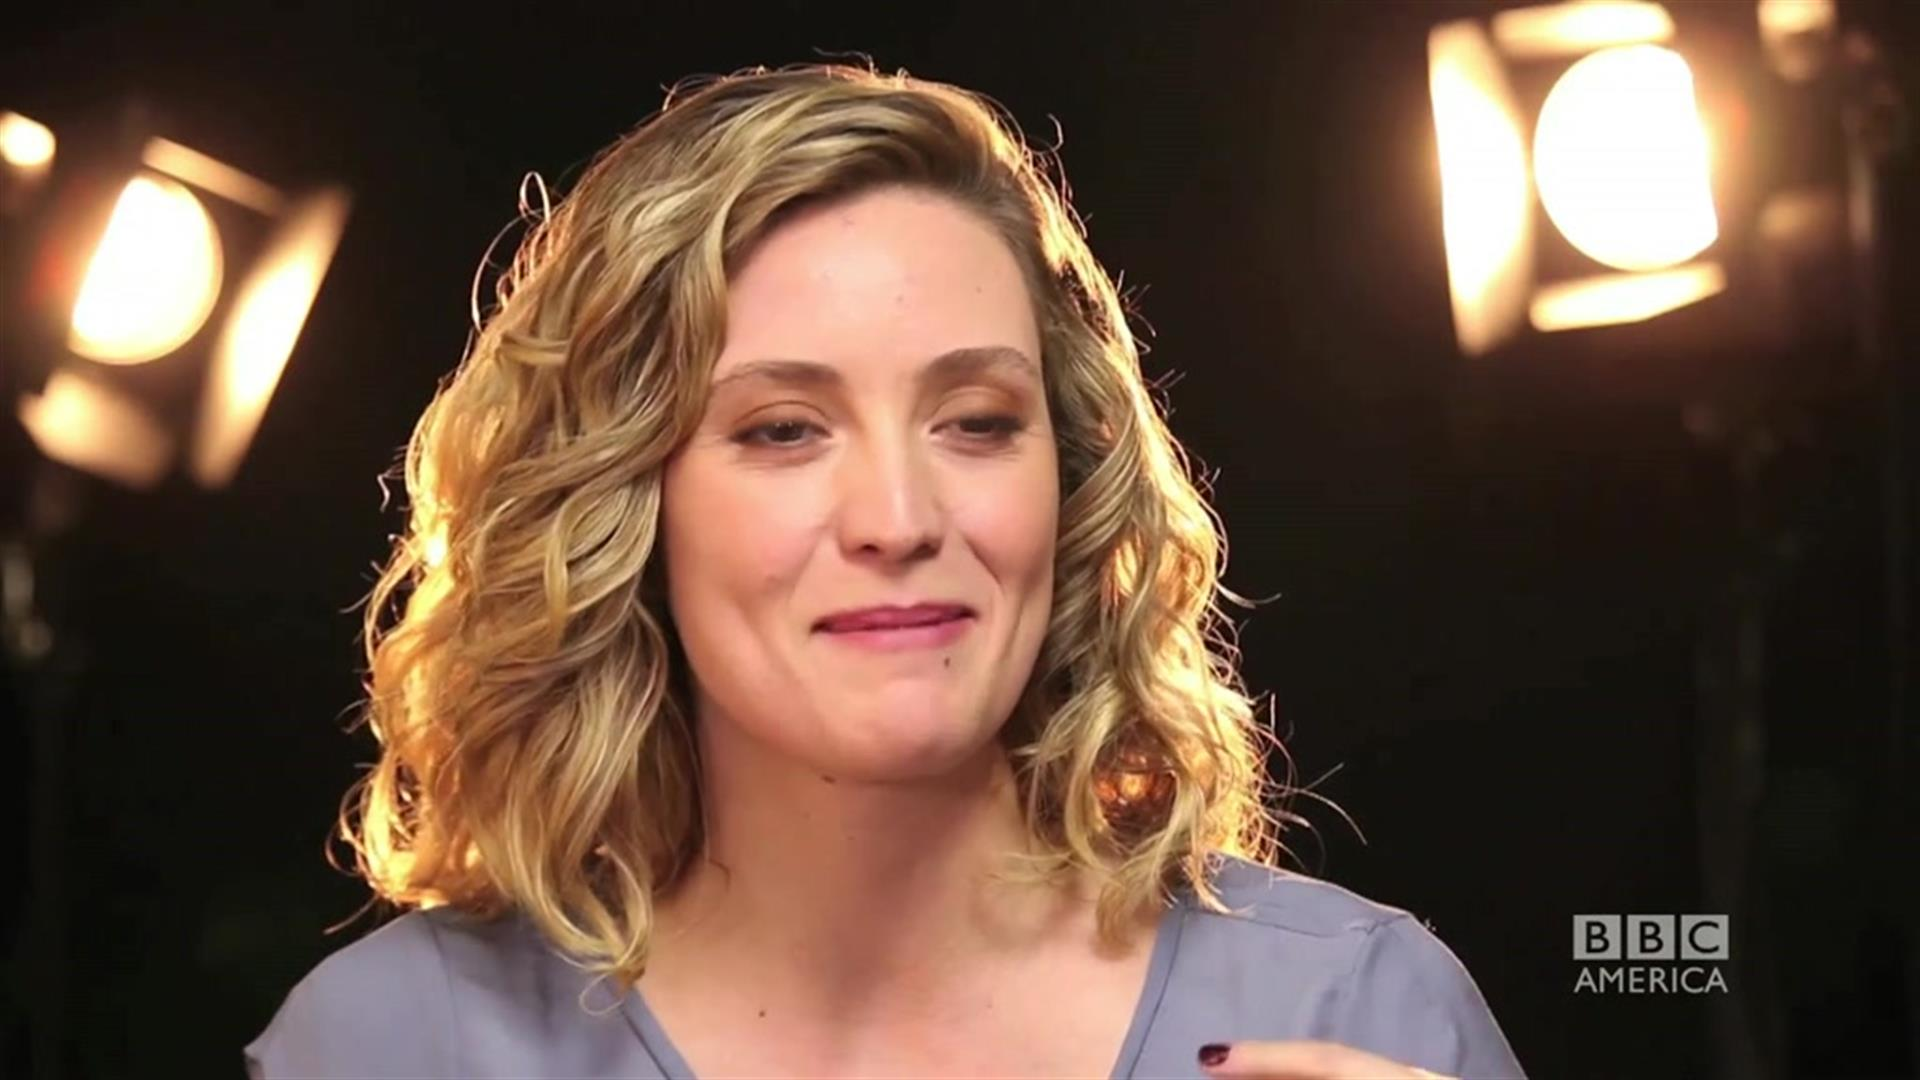 2019 Evelyne Brochu naked (19 photos), Topless, Paparazzi, Boobs, in bikini 2020